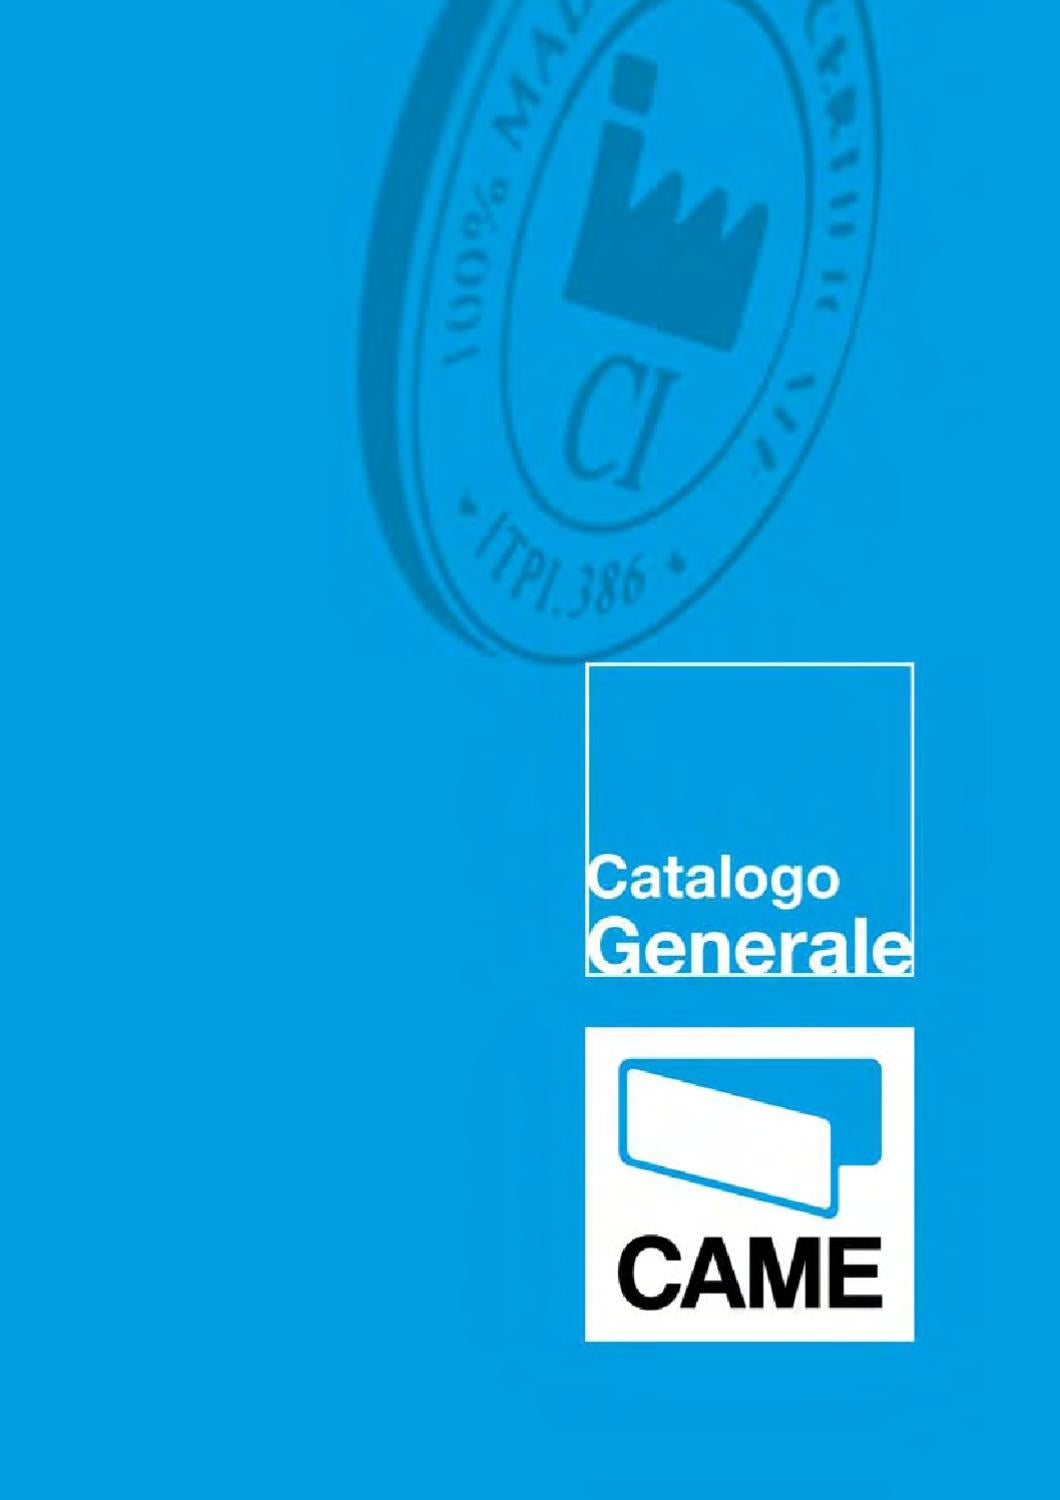 Catalogo Generale Came 2010 By Dodic Elettronic S R L Issuu